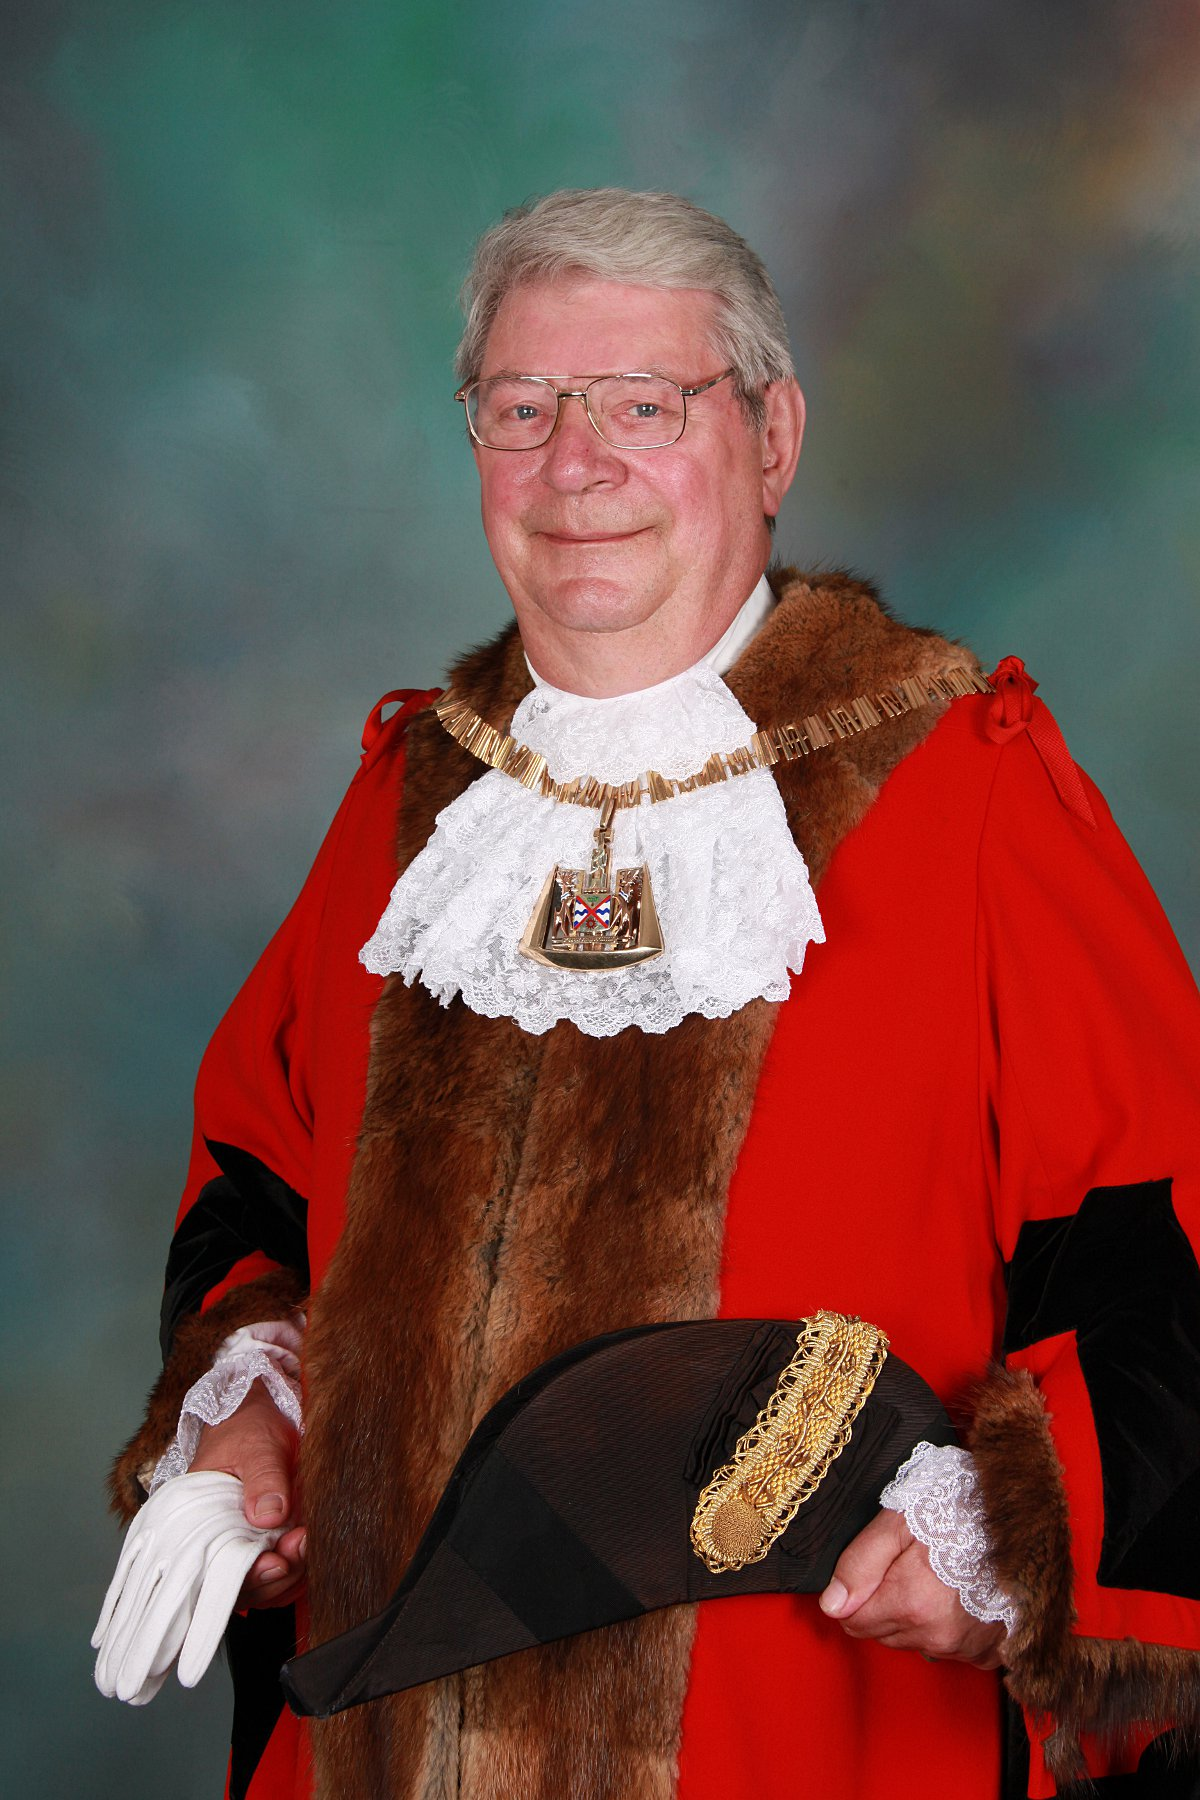 Coun Haward Marriner is Bexley's new mayor.